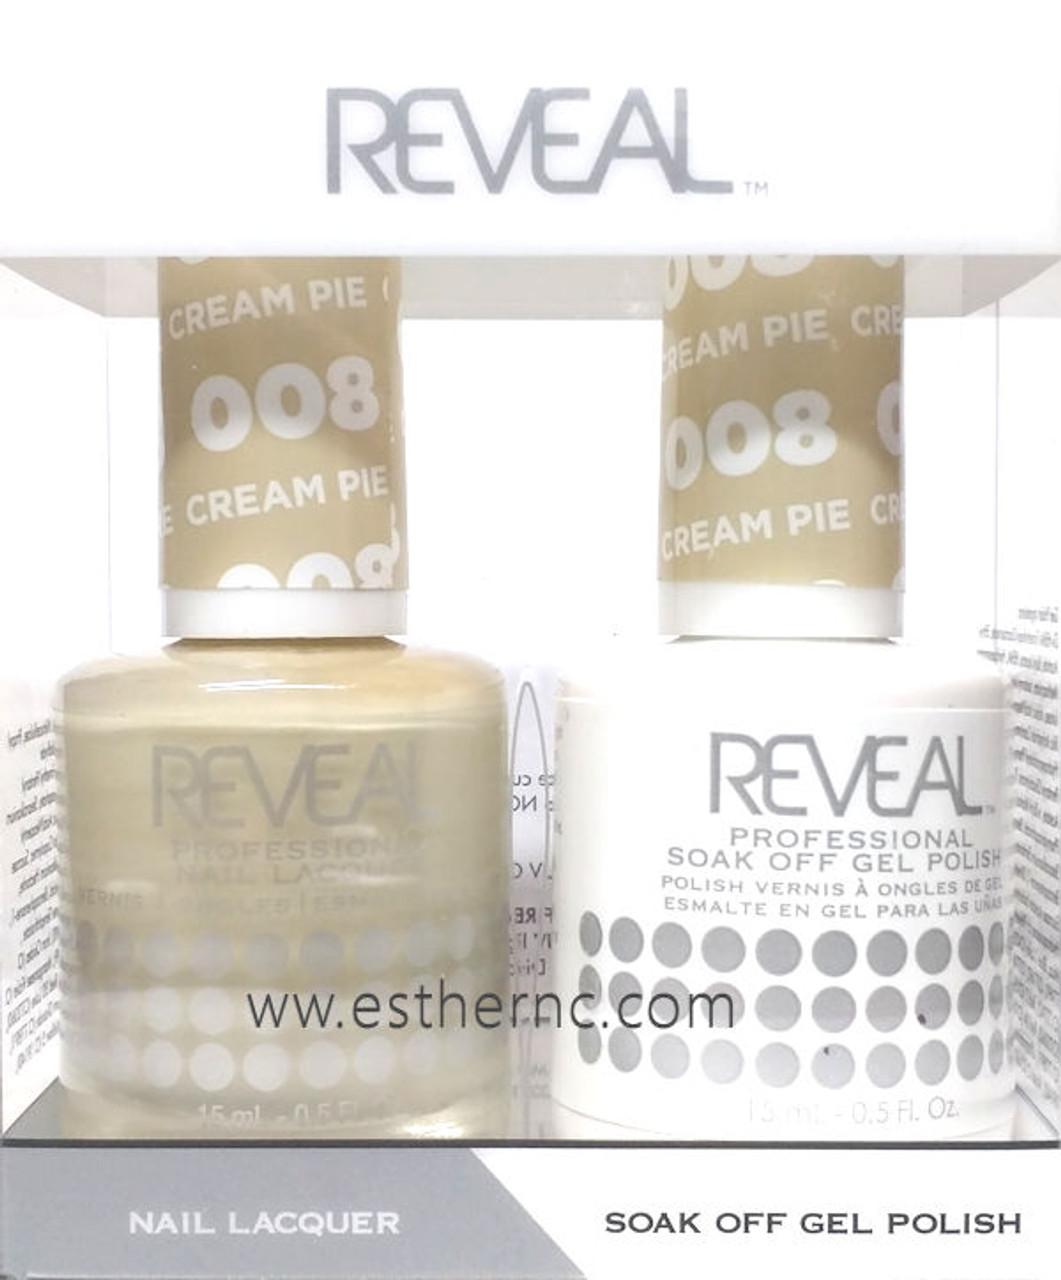 Reveal Gel Polish Cream Pie #008